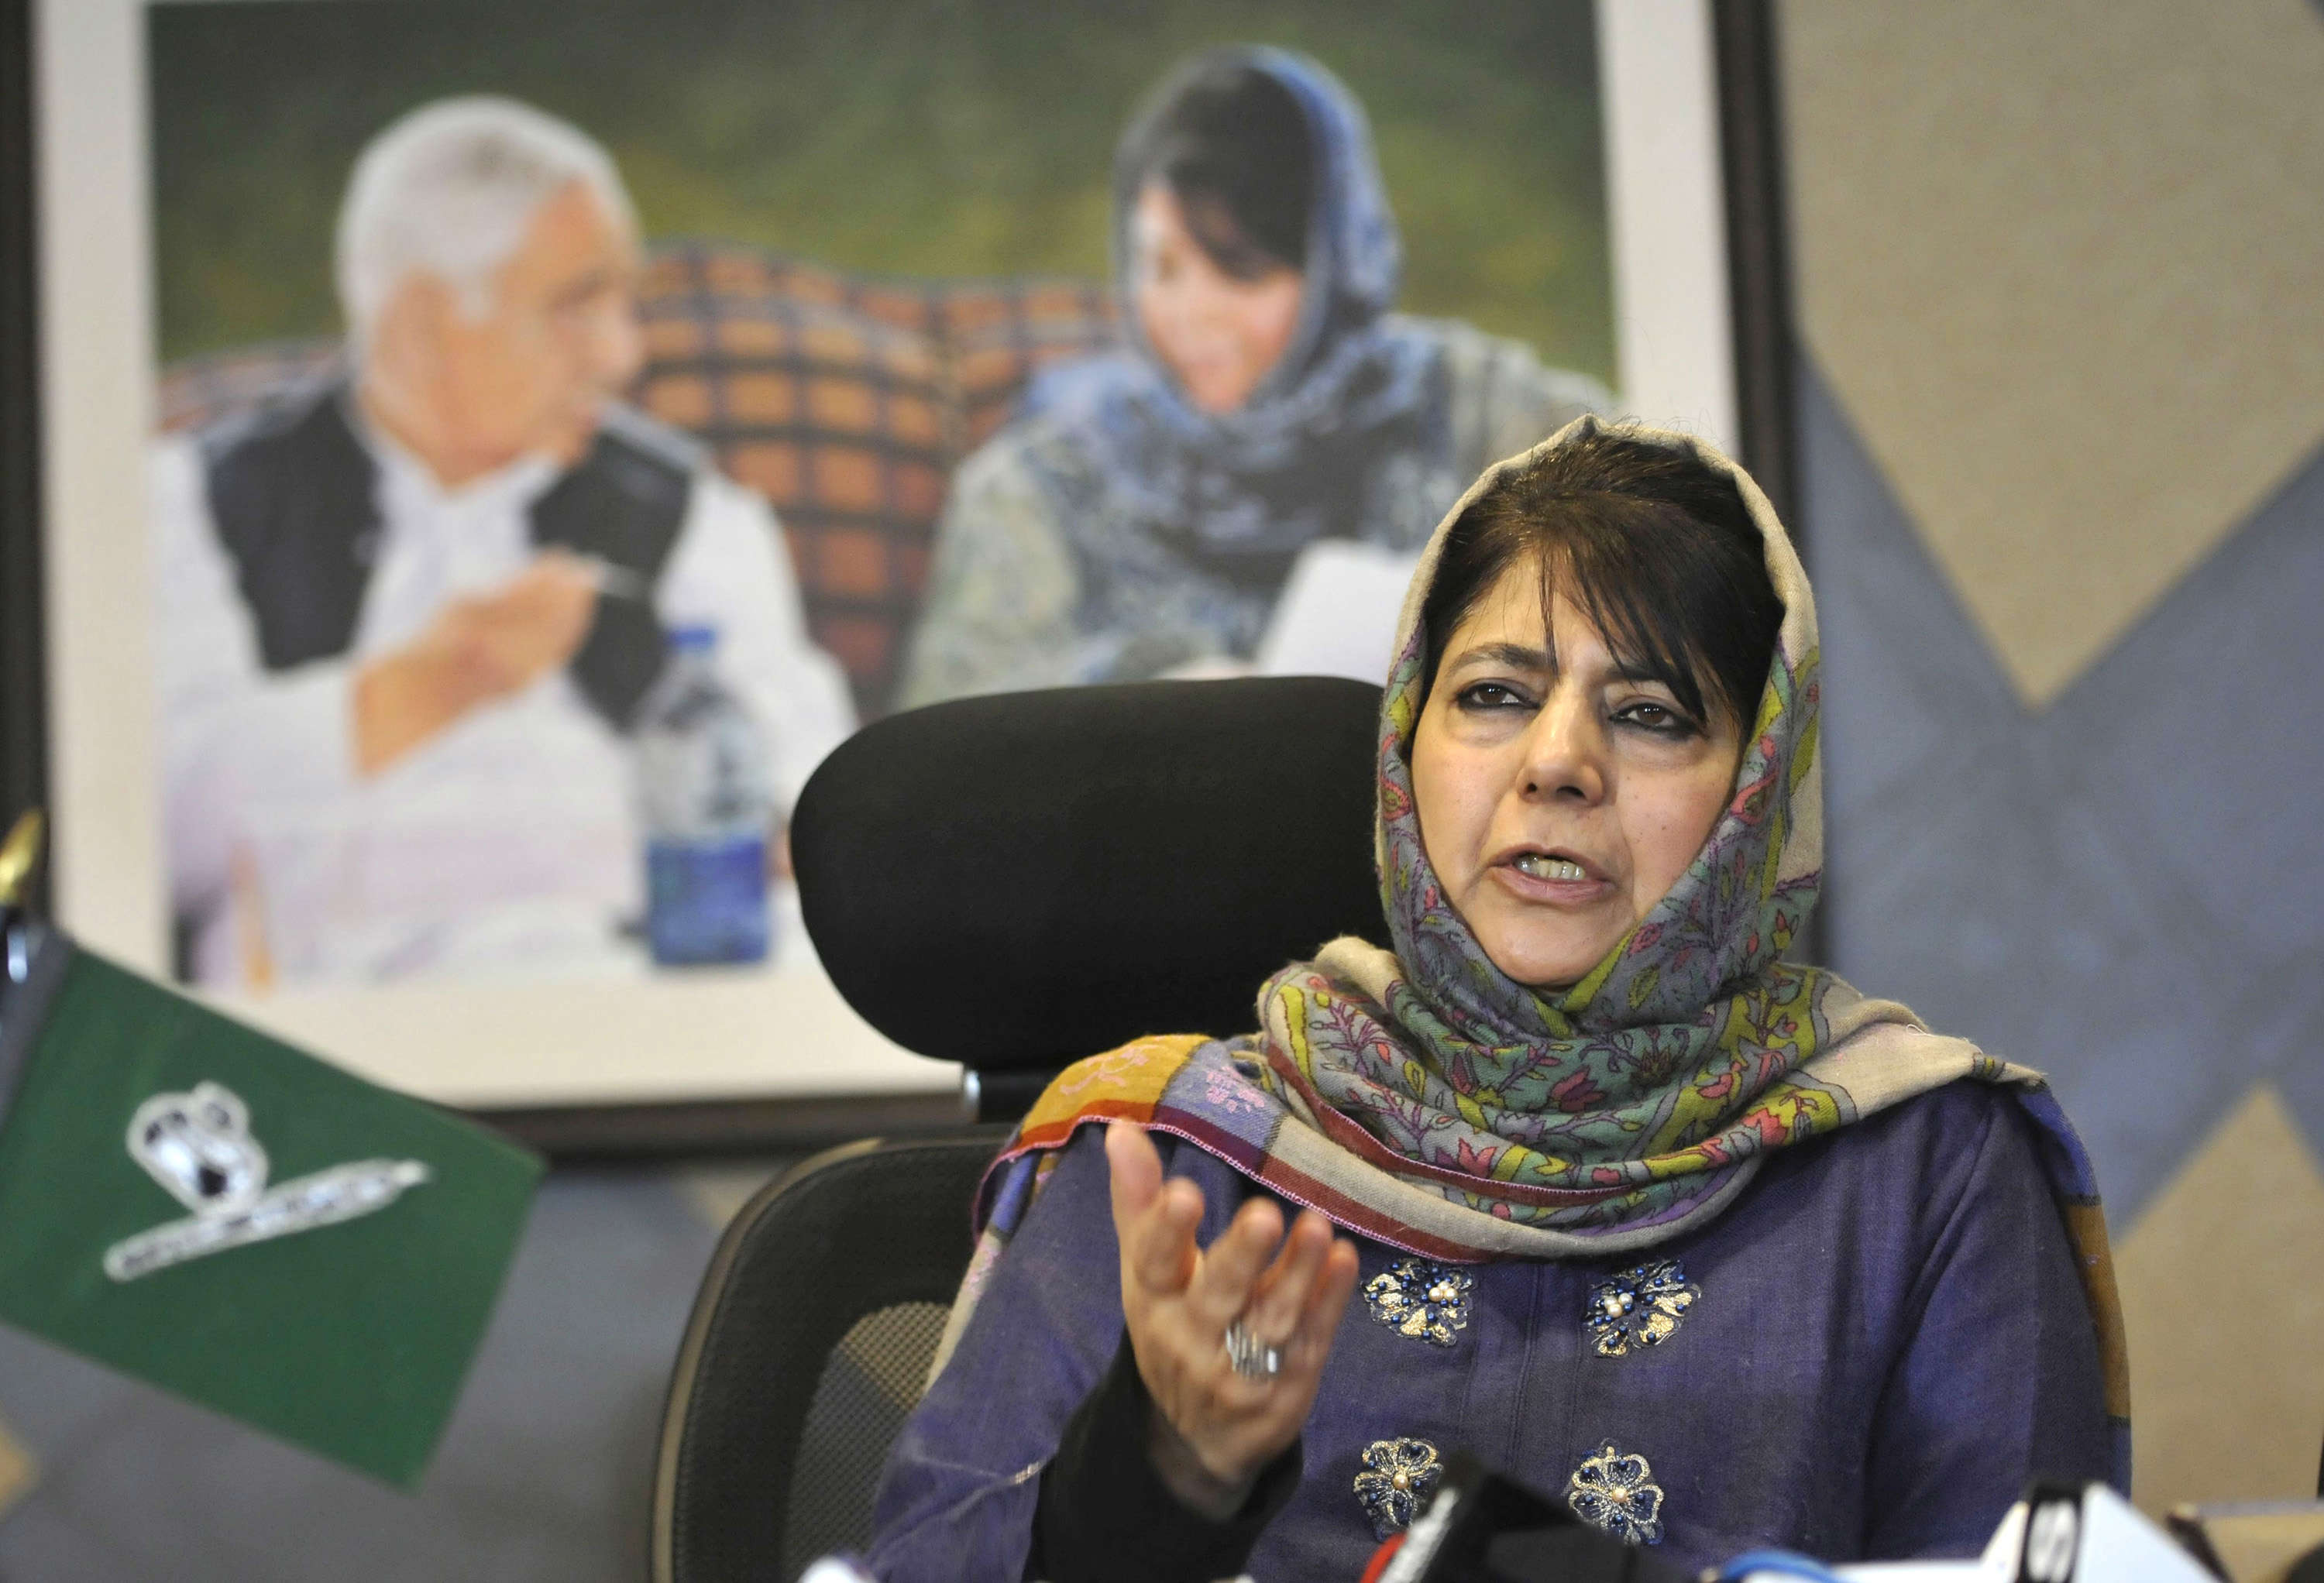 Slide 28 of 31: SRINAGAR, INDIA - FEBRUARY 13: Former Jammu and Kashmir chief minister and PDP chief Mehbooba Mufti during a press conference at her residence, on February 11, 2019 in Srinagar, India. Mehbooba Mufti said that the BJP is 'playing with fire' by trying to create a 'communal divide' in the state. She also alleged, BJP trying to break the Muslim majority character of the state. Your aim is to create a divide between Shia-Sunni, Gujjar-Pahari, Kashmiri-Pandits and many others. You are playing with fire.' (Photo by Waseem Andrabi/Hindustan Times via Getty Images)